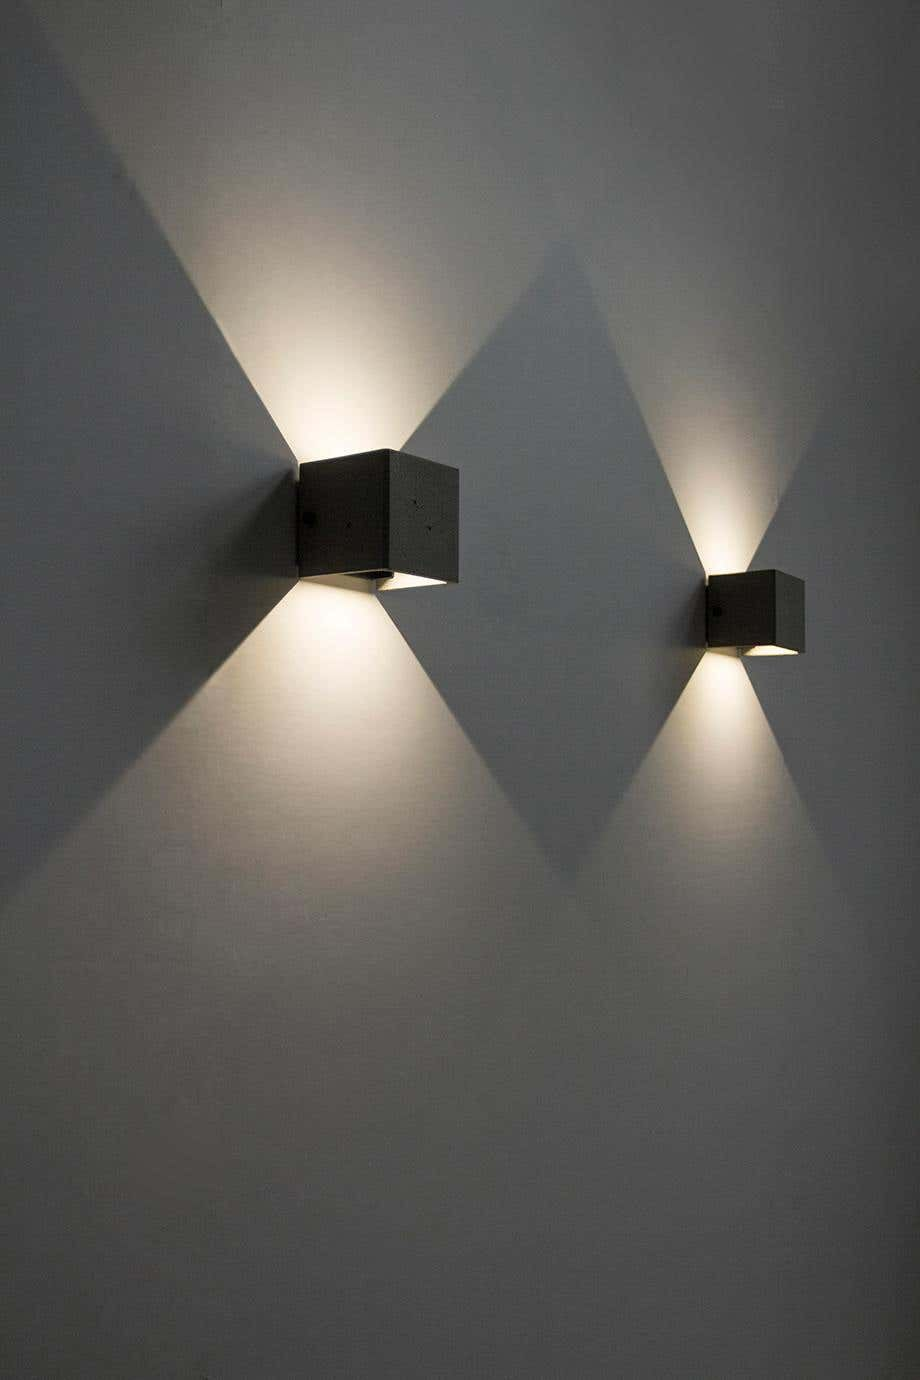 Concrete Wall Lamp Sconce Outdoor Lighting V In 2020 Wall Lamp Wall Light Fittings Modern Led Ceiling Lights